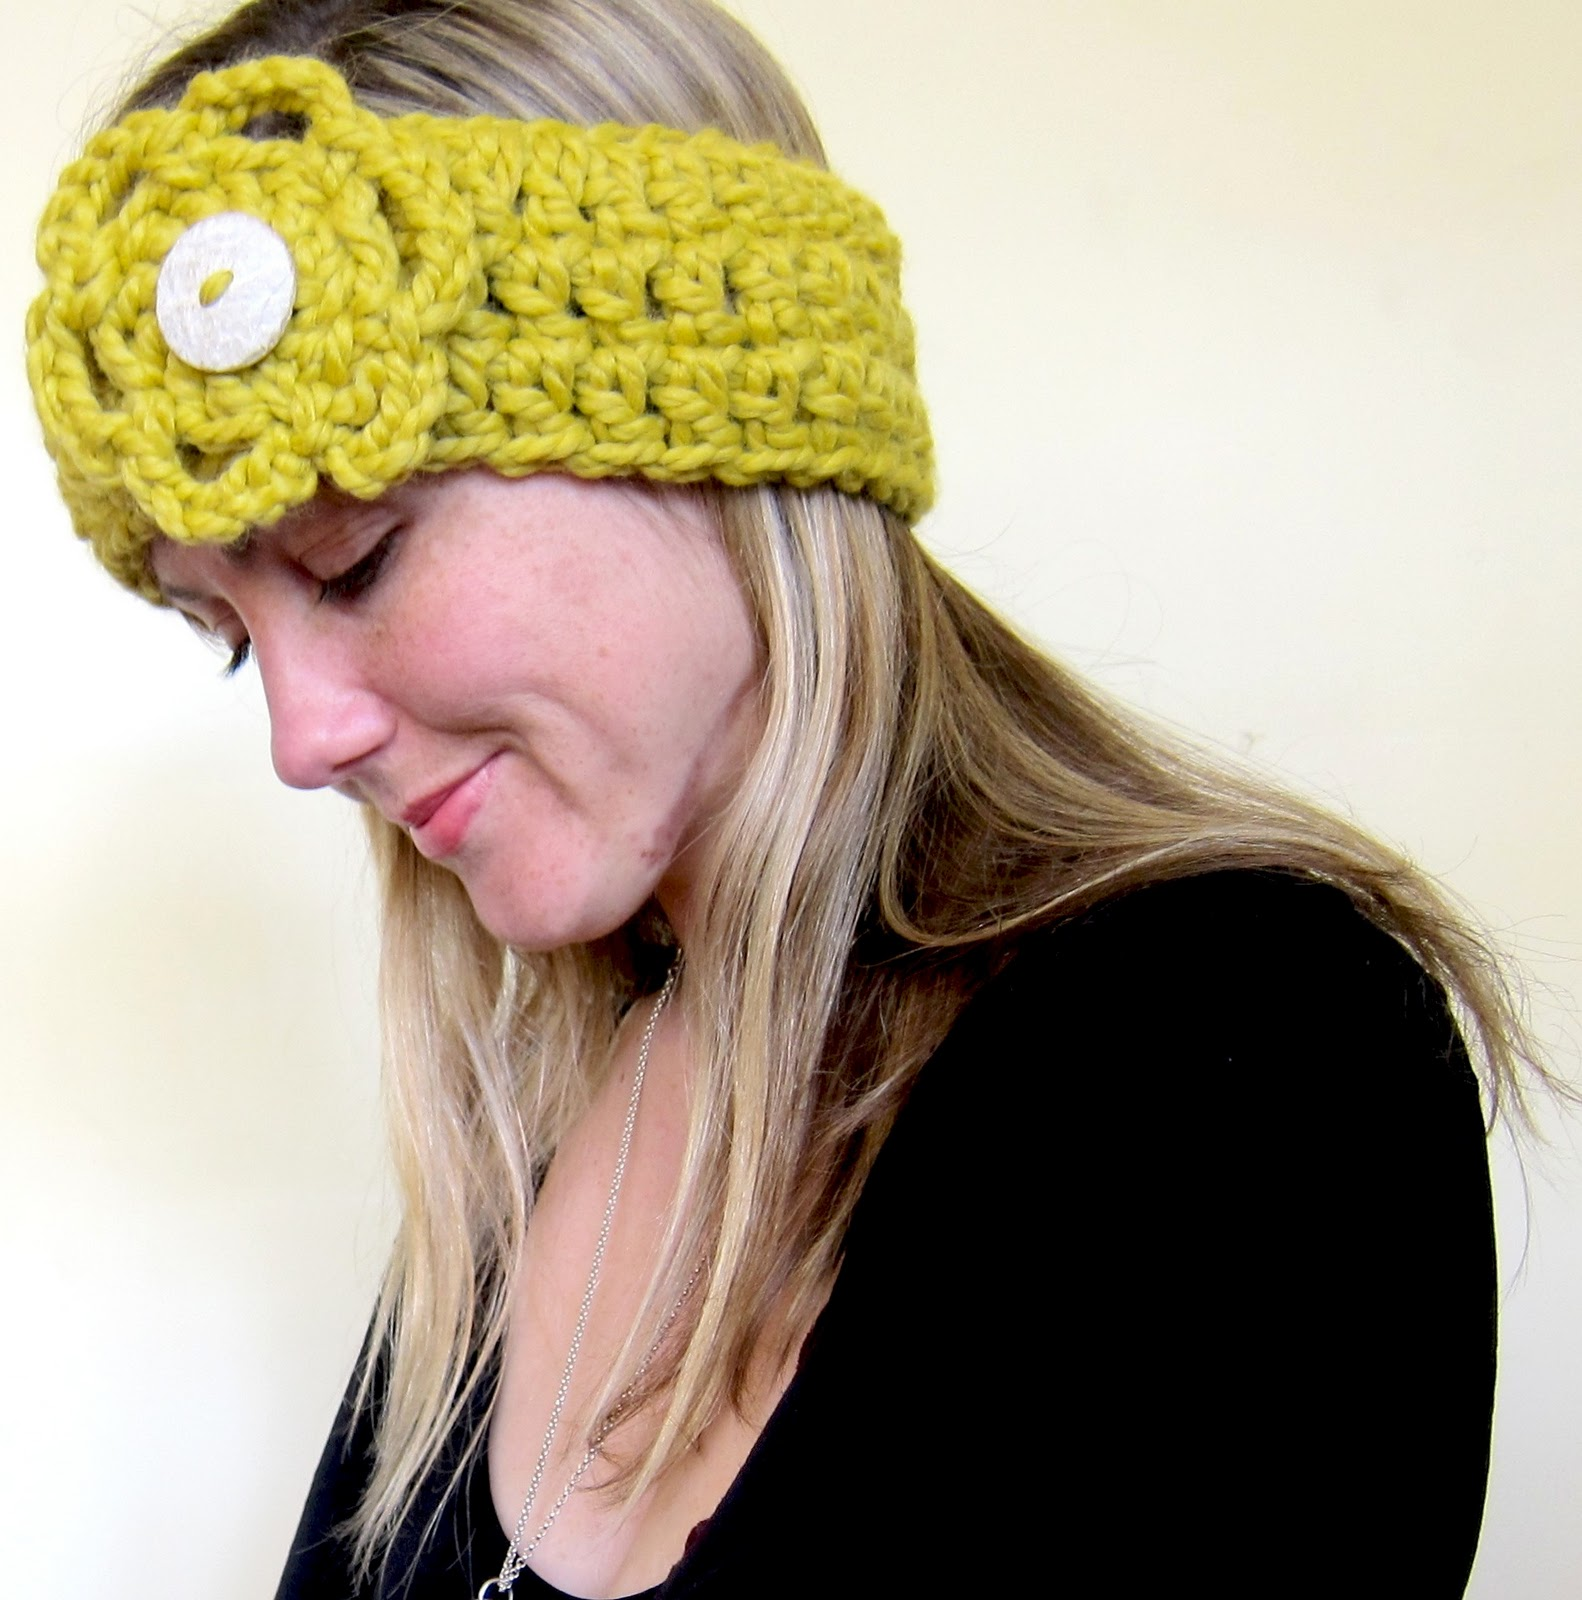 Crochet Wide Headband With Flower Free Pattern : CROCHET HEADBANDS PATTERNS Free Patterns